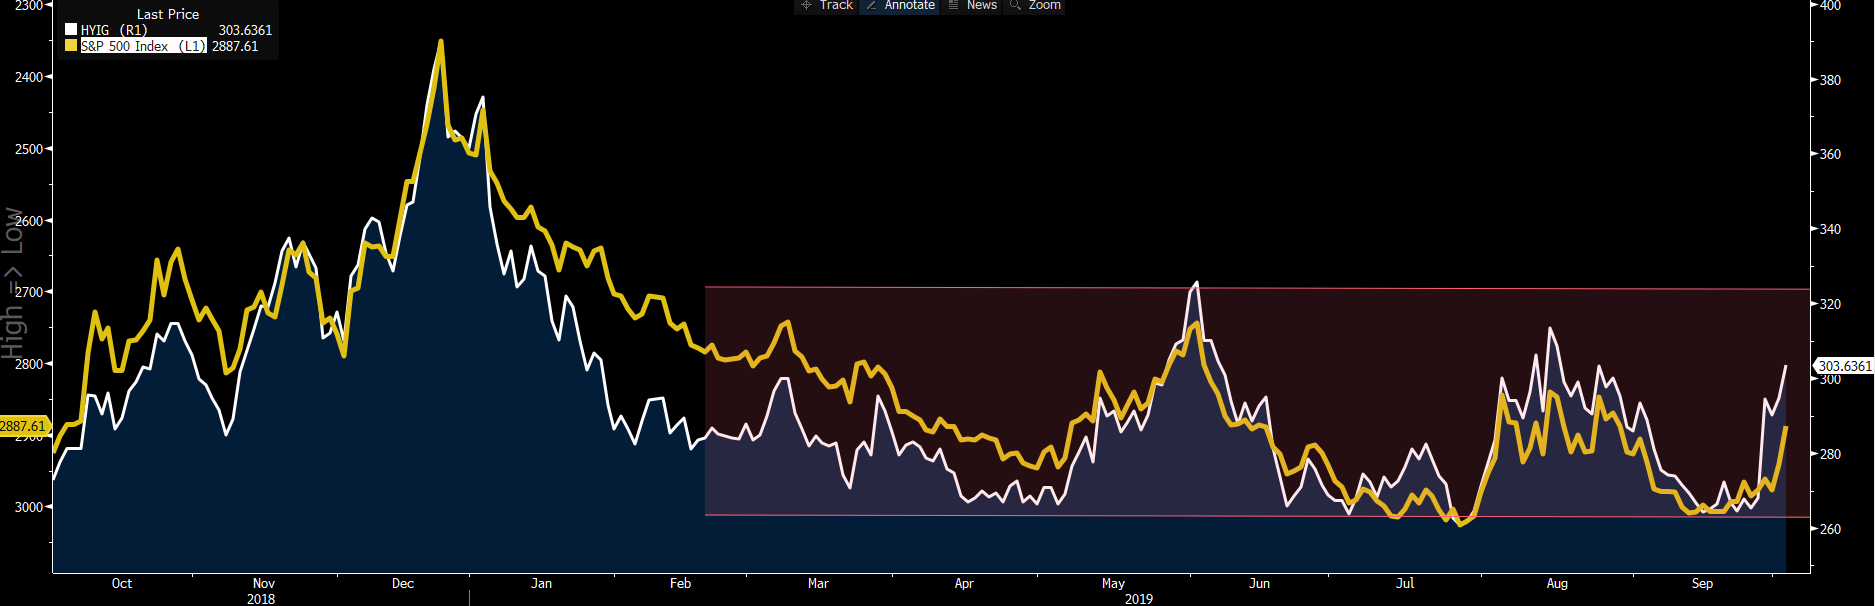 White: HY/IG credit spread. Yellow: S&P 500 (inverted).